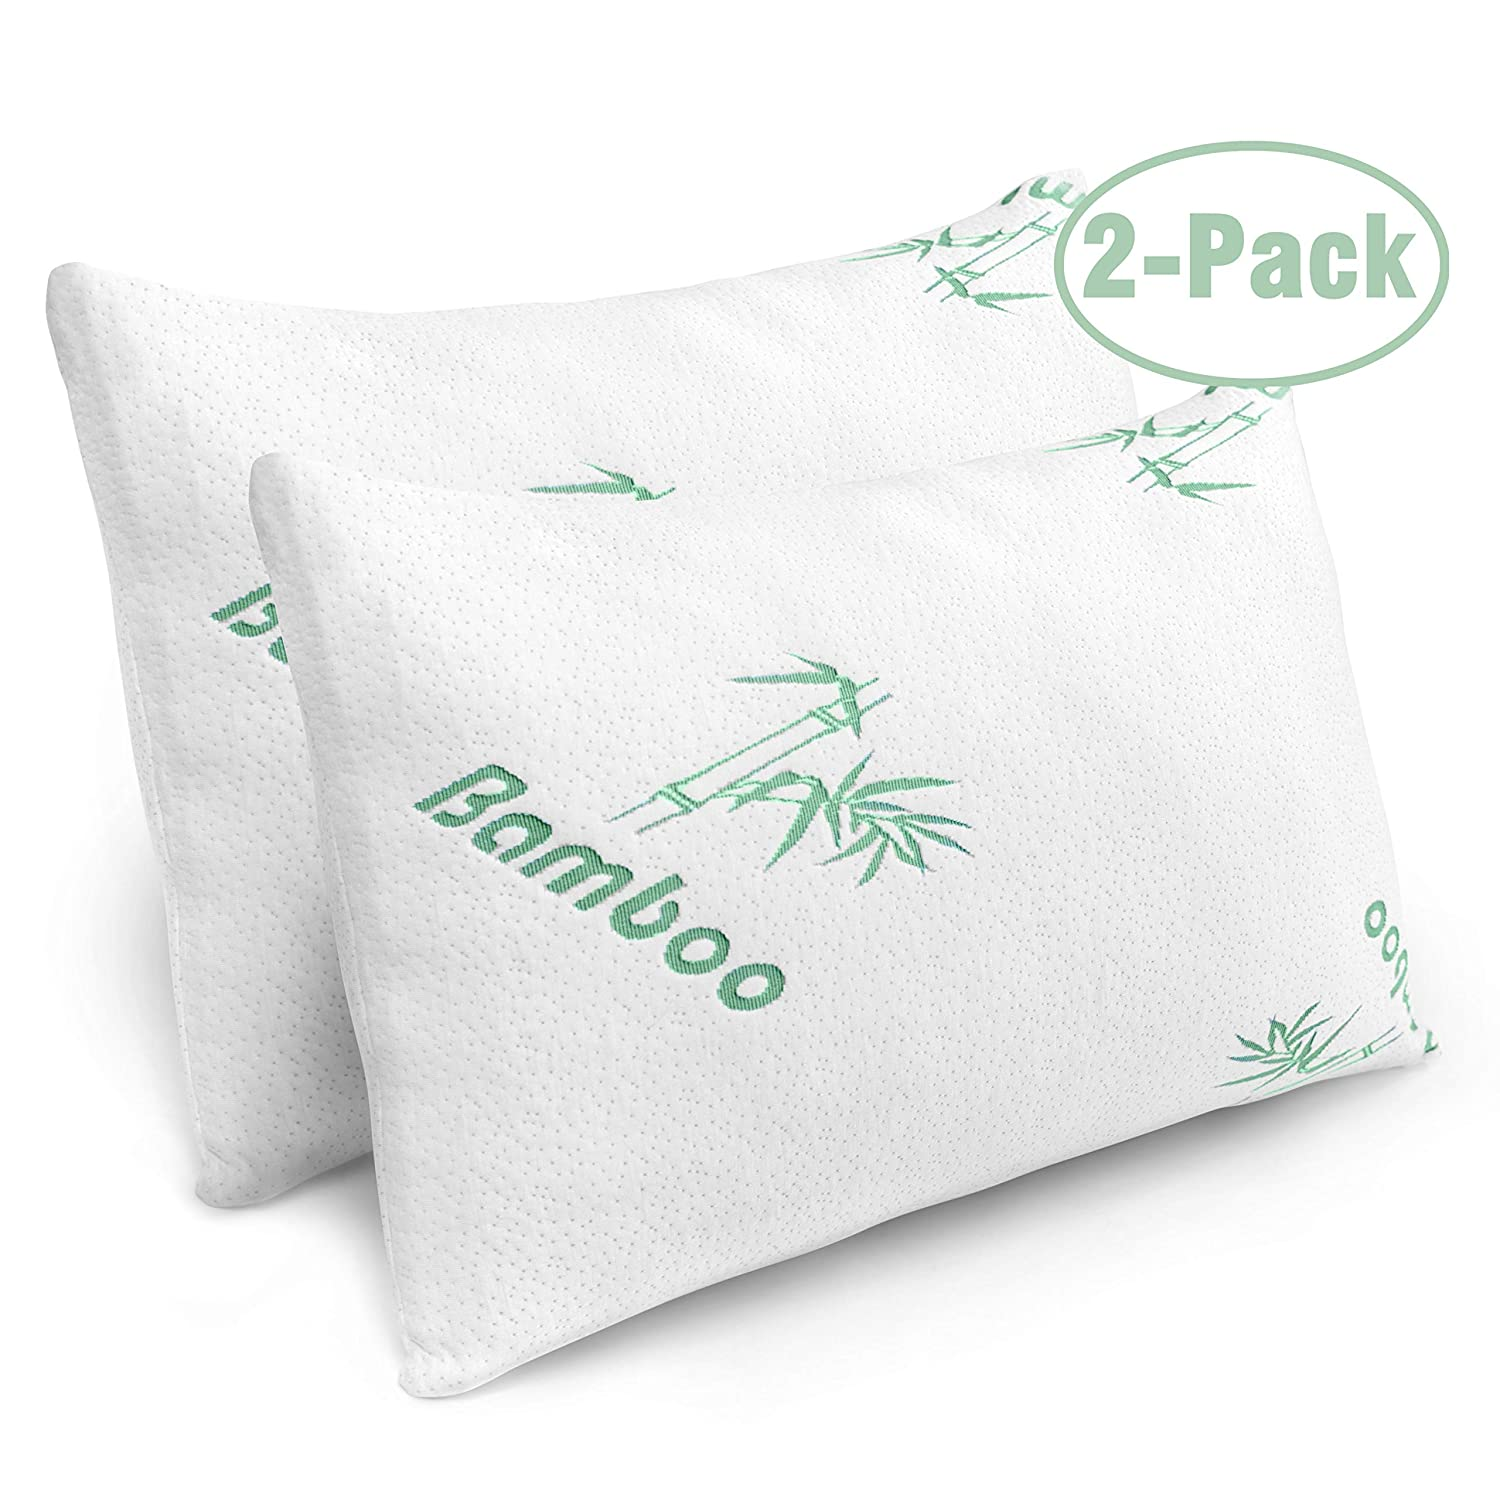 Plixio Pillows for Sleeping - 2 Pack Cooling Shredded Memory Foam Bed...